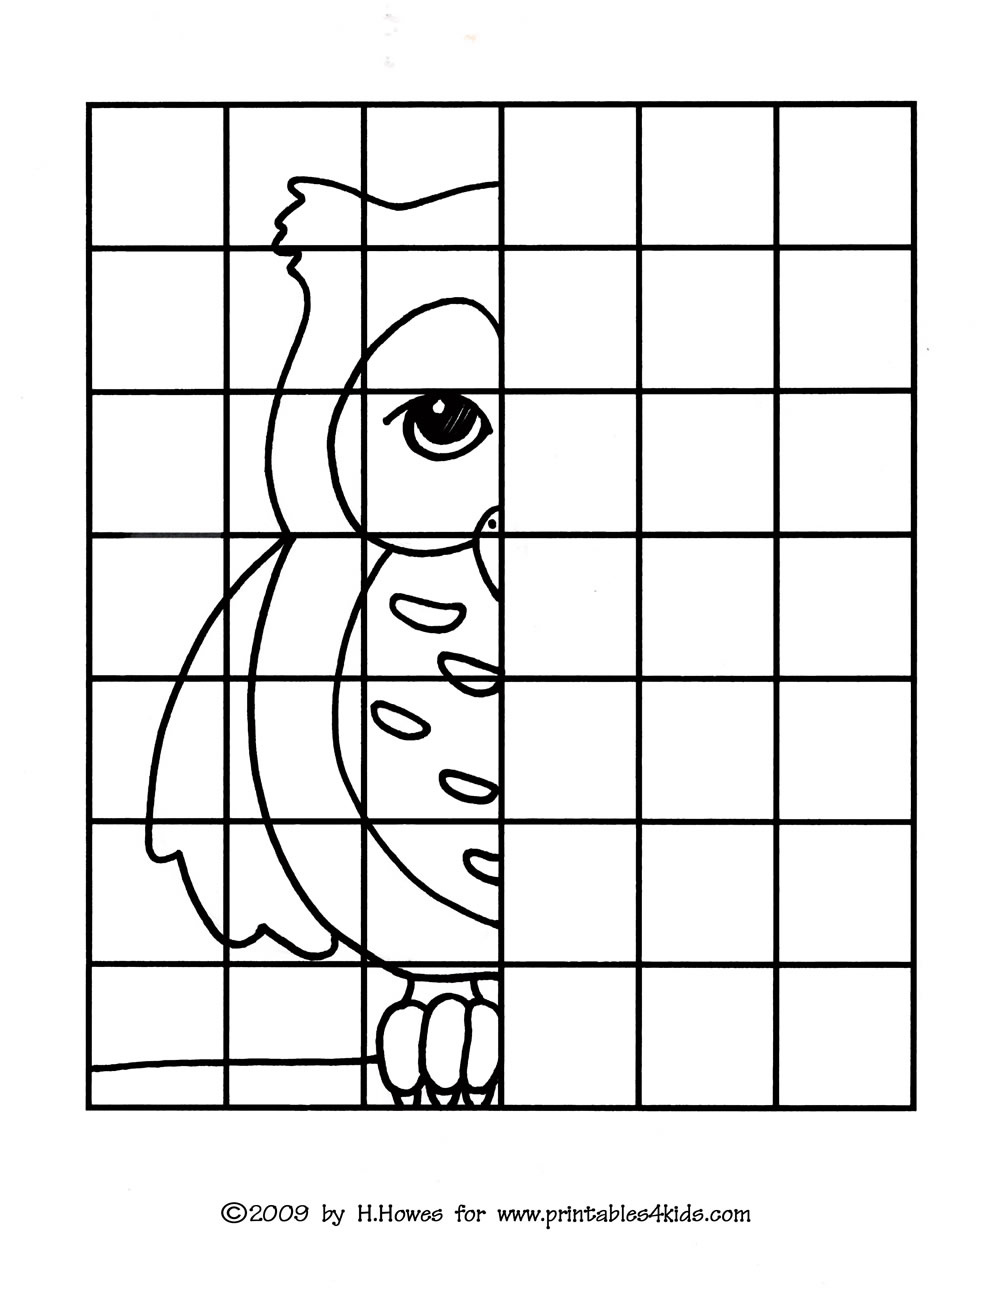 4 Images of Owl Puzzles Printables